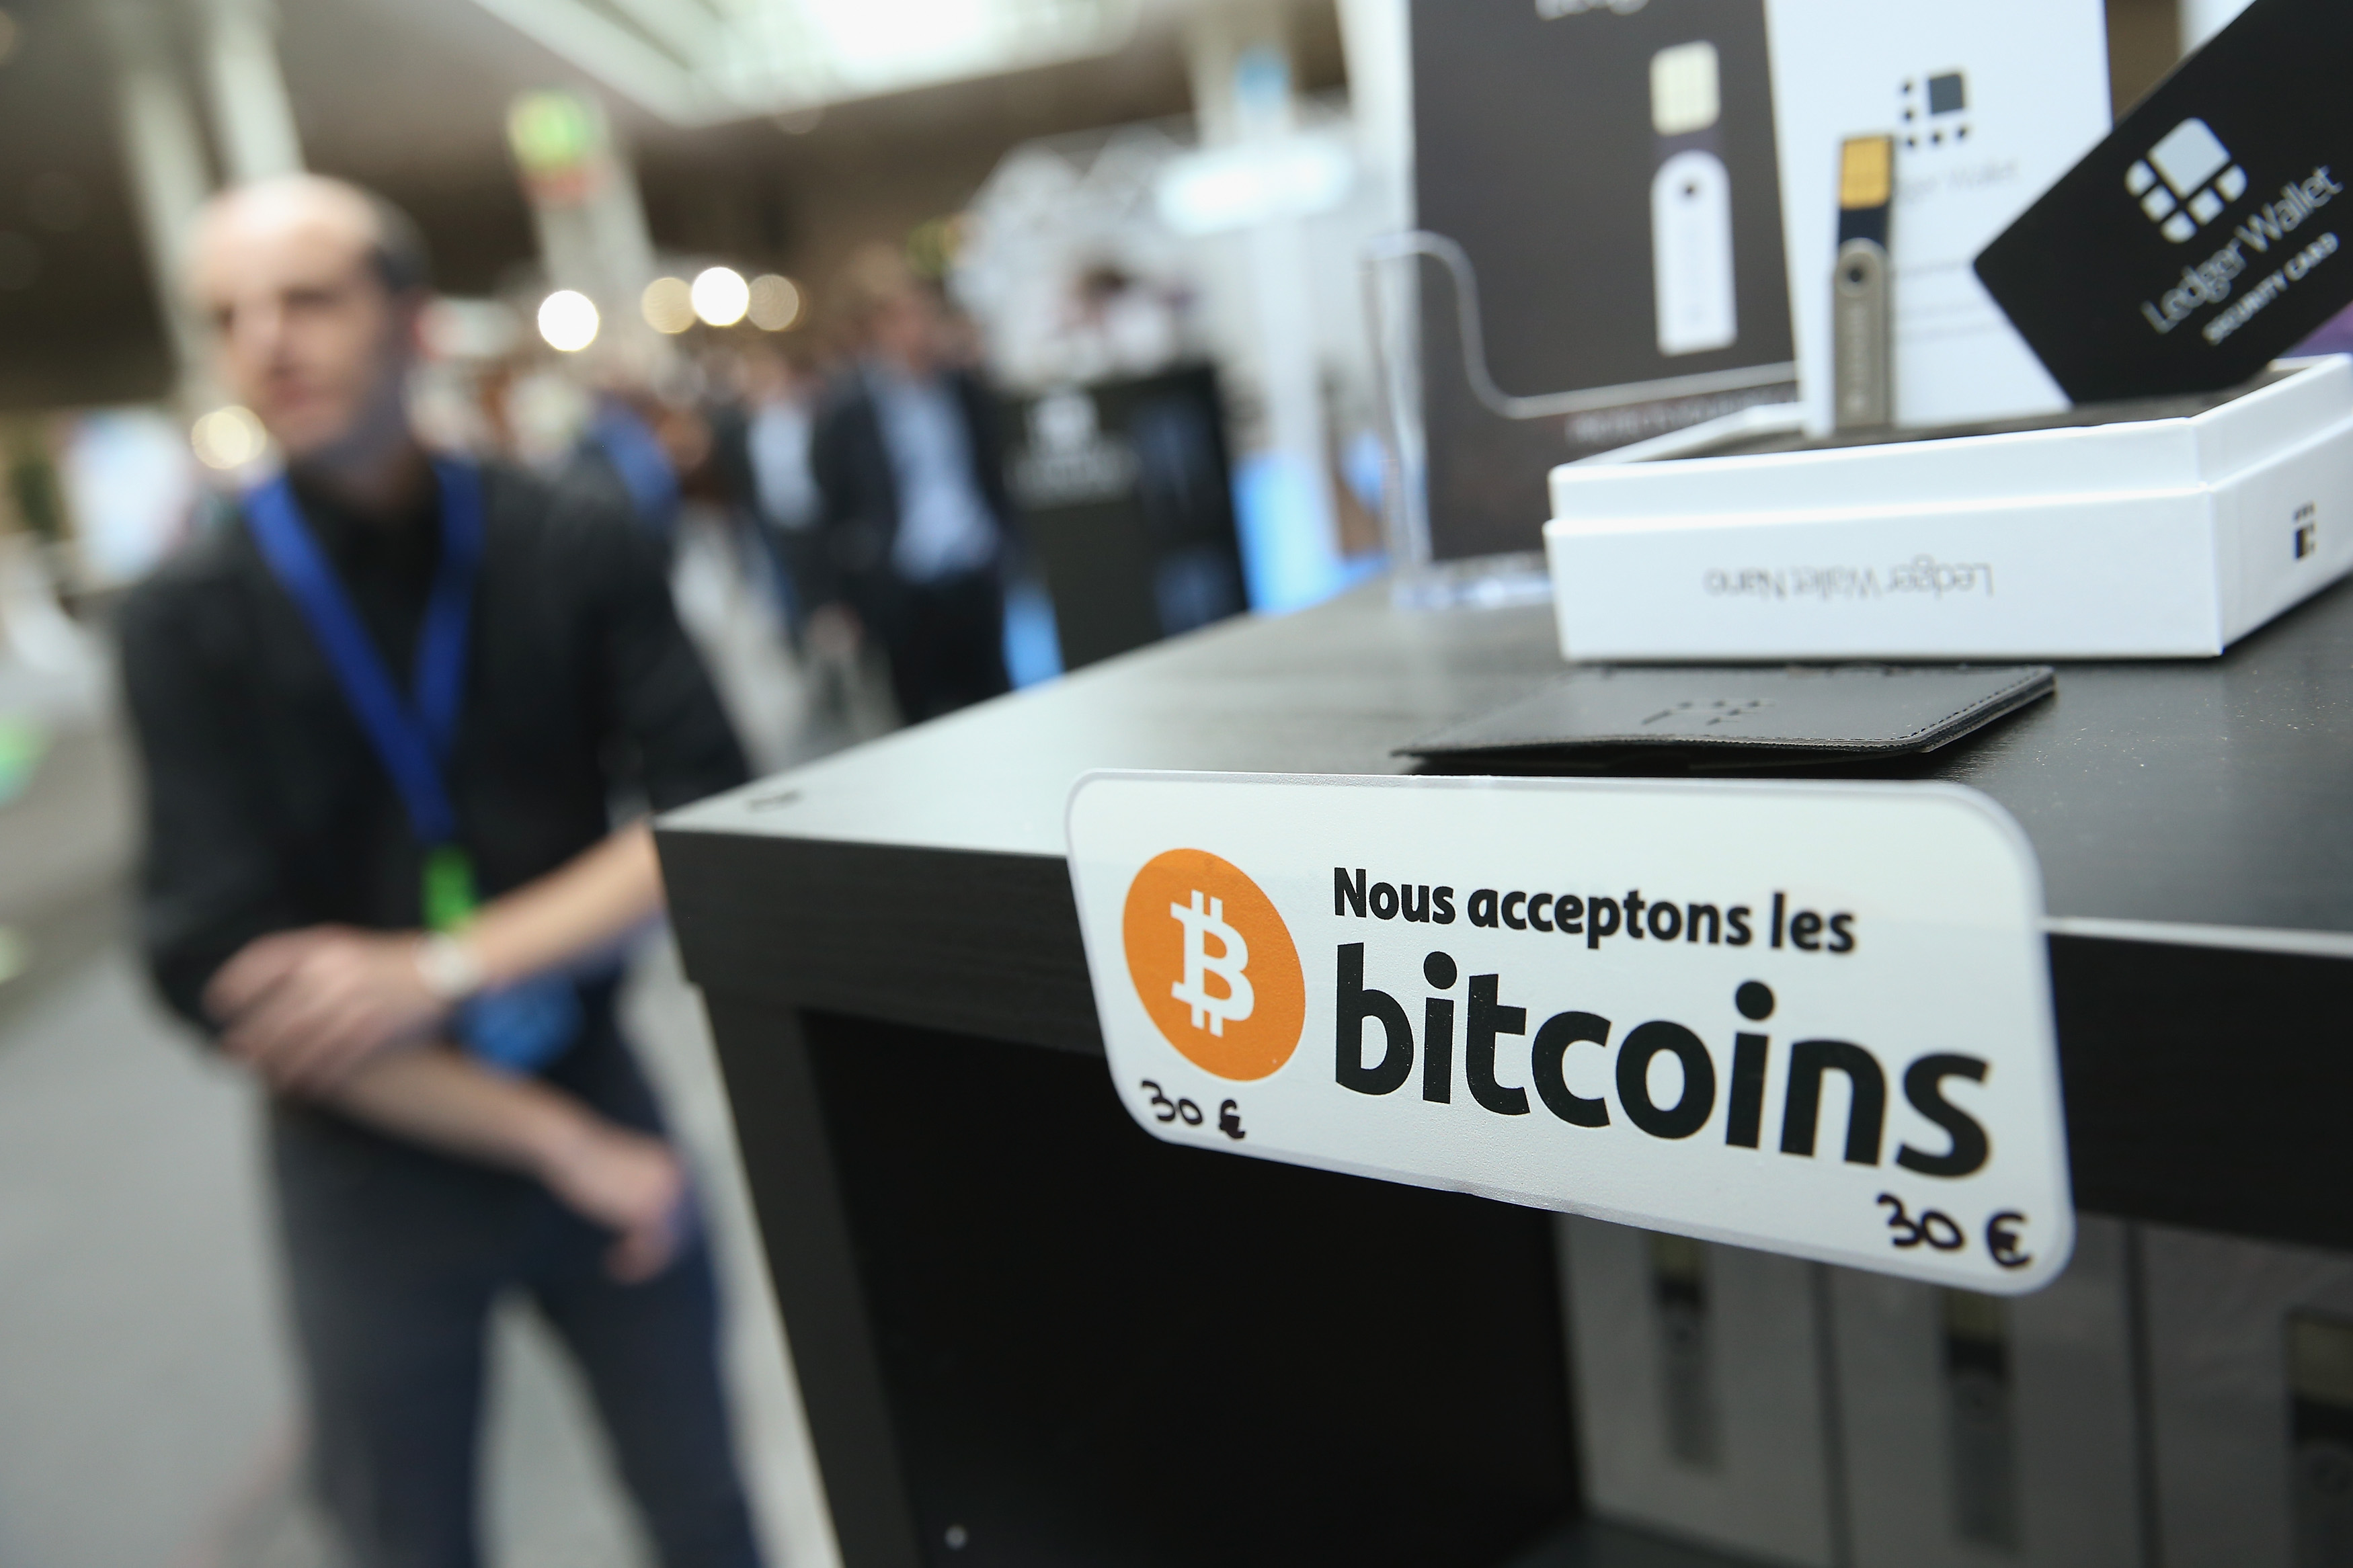 Buy stuff online with bitcoins newsletter